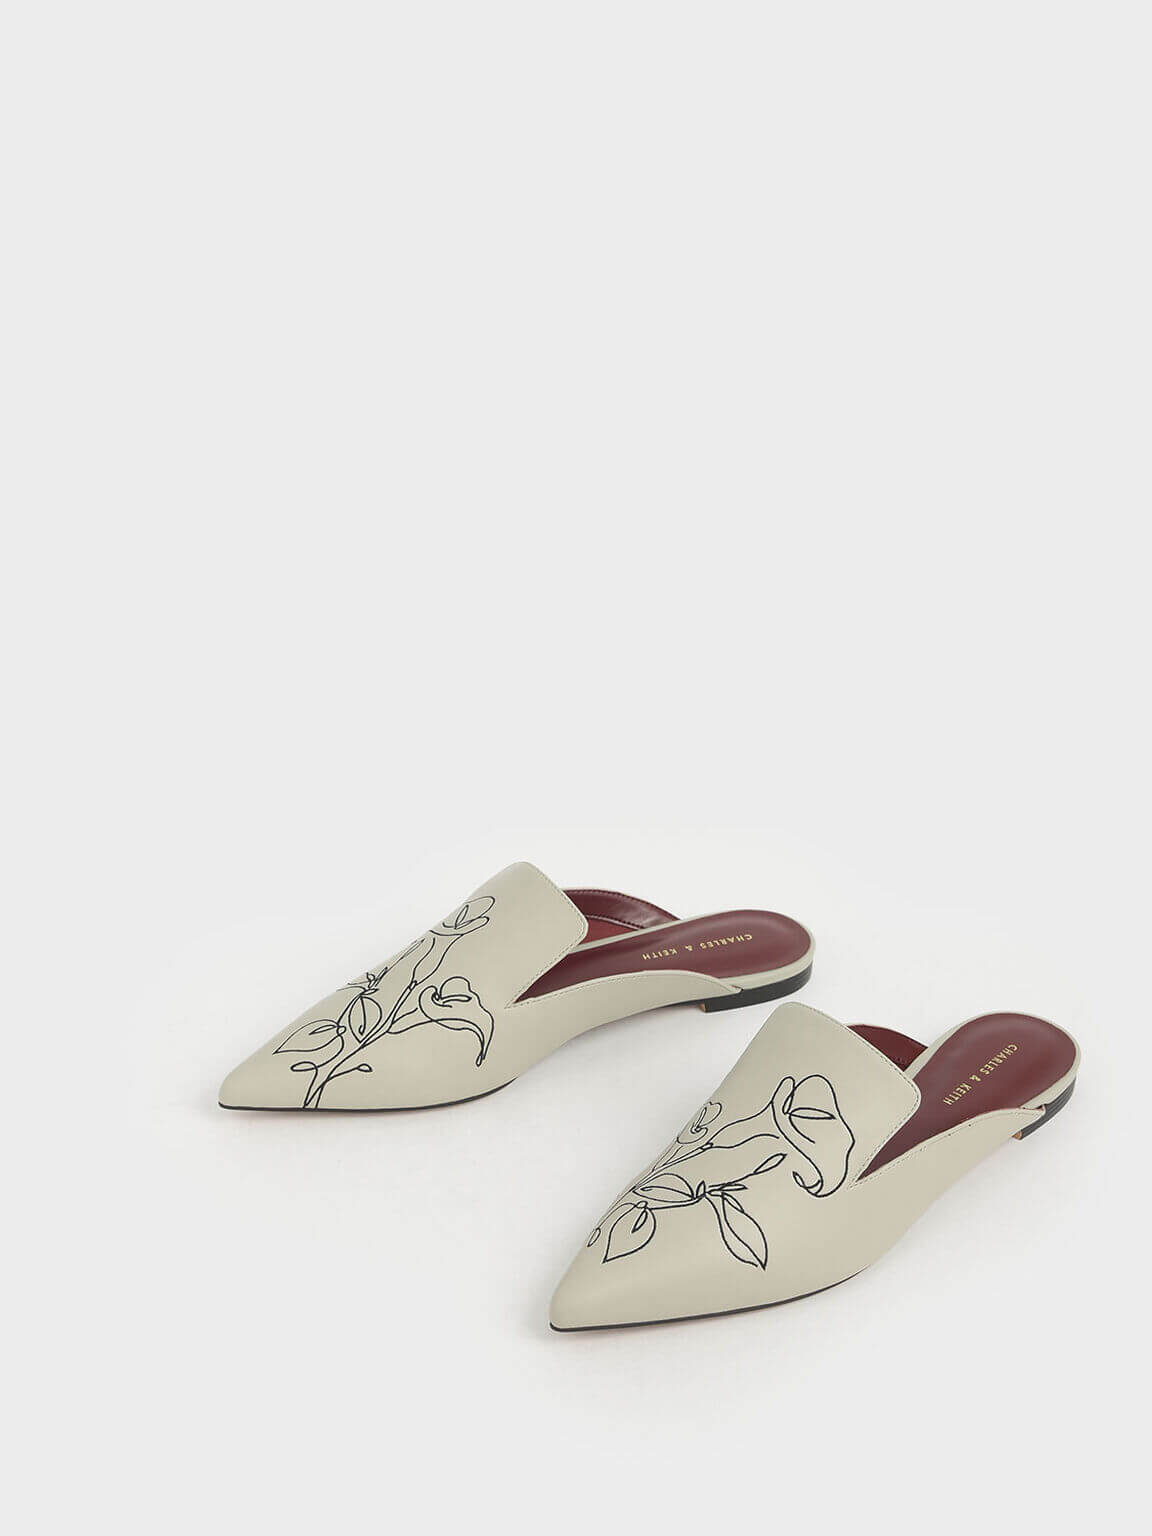 floral embroidered pointed toe mules